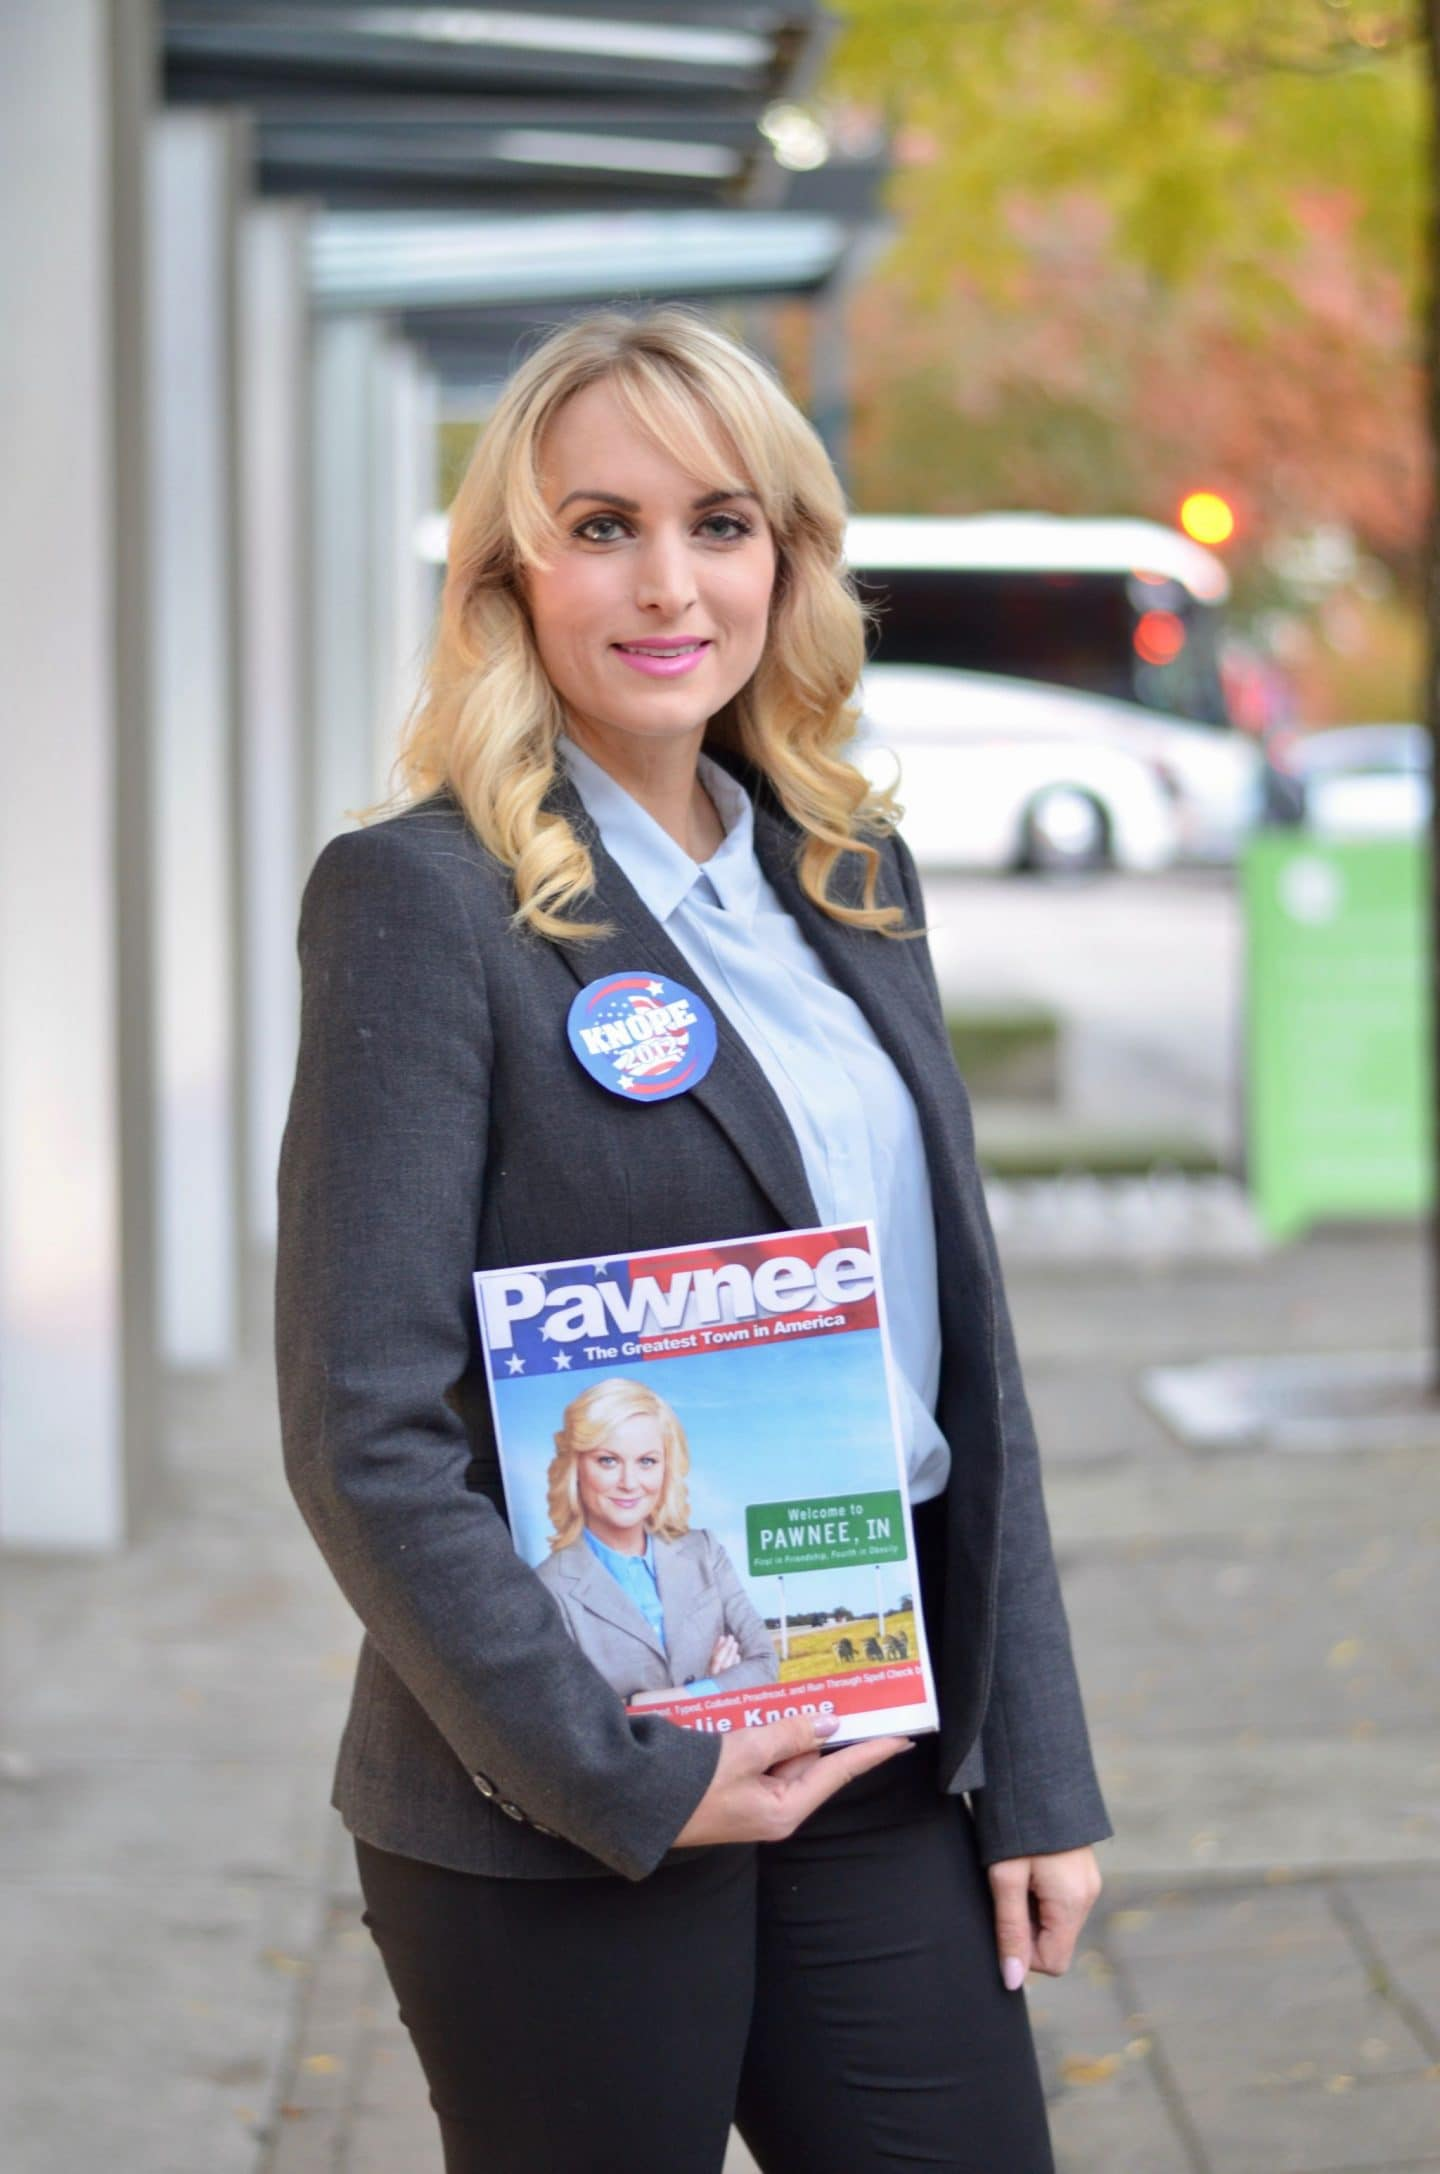 Leslie Knope from Parks & Rec. Halloween Costume - Check out these 40 cute and creative Halloween costume ideas for women, couples, families, and friends! #halloween #halloweencostumes #halloweencostumeideas